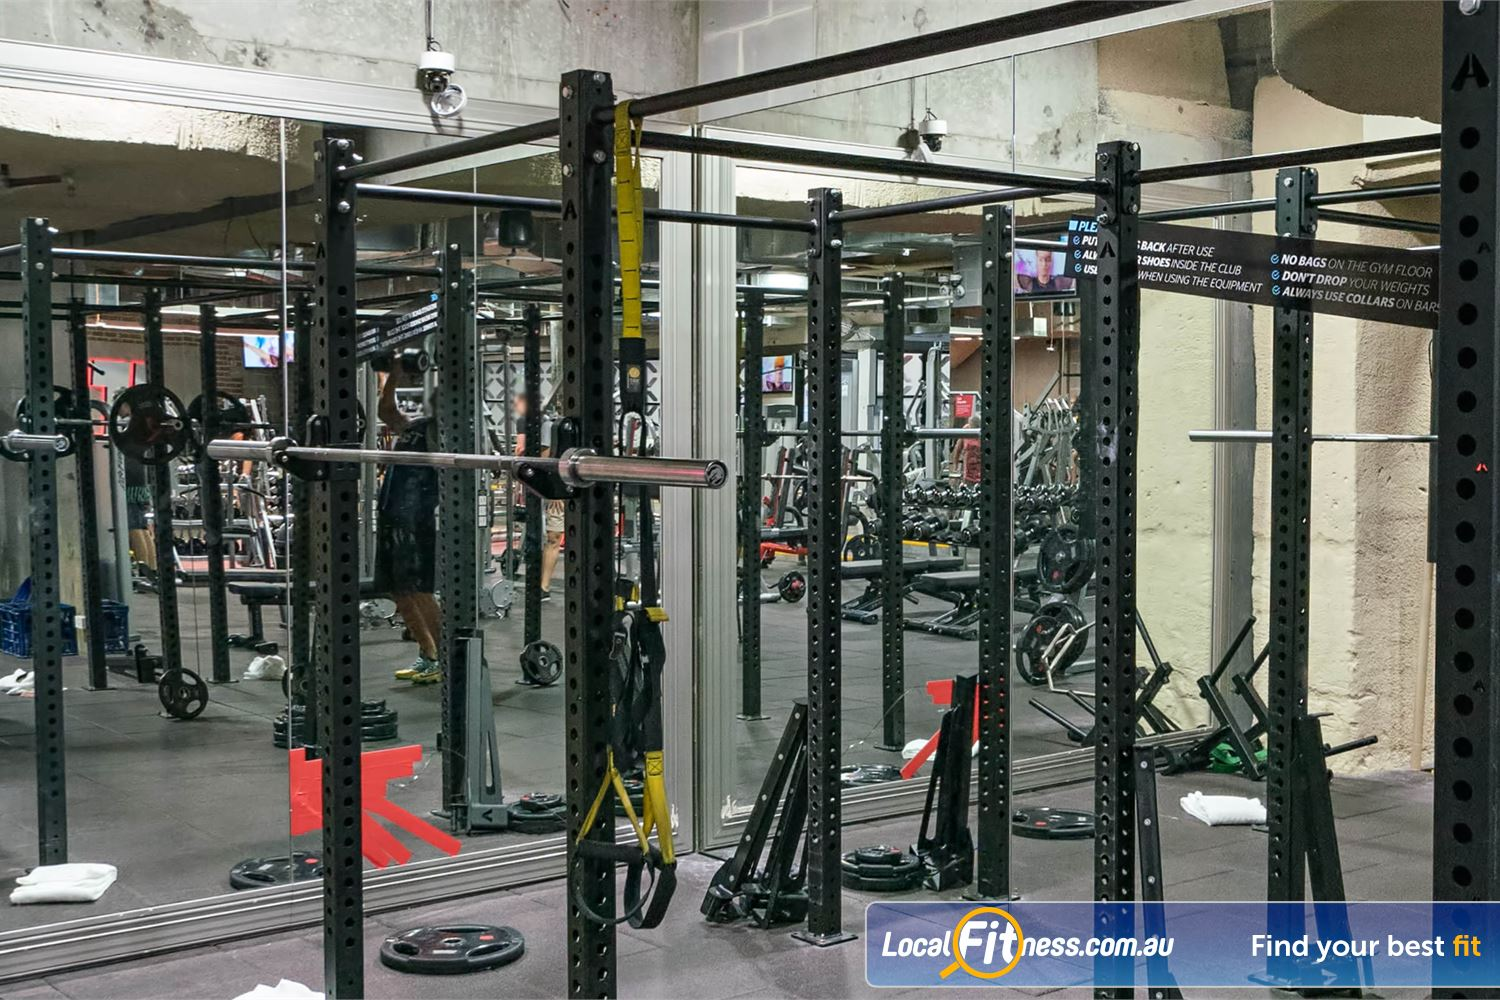 Fitness First Platinum Shelley St Sydney The high performance strength cage is great for squats, TRX training, shoulder presses and more.